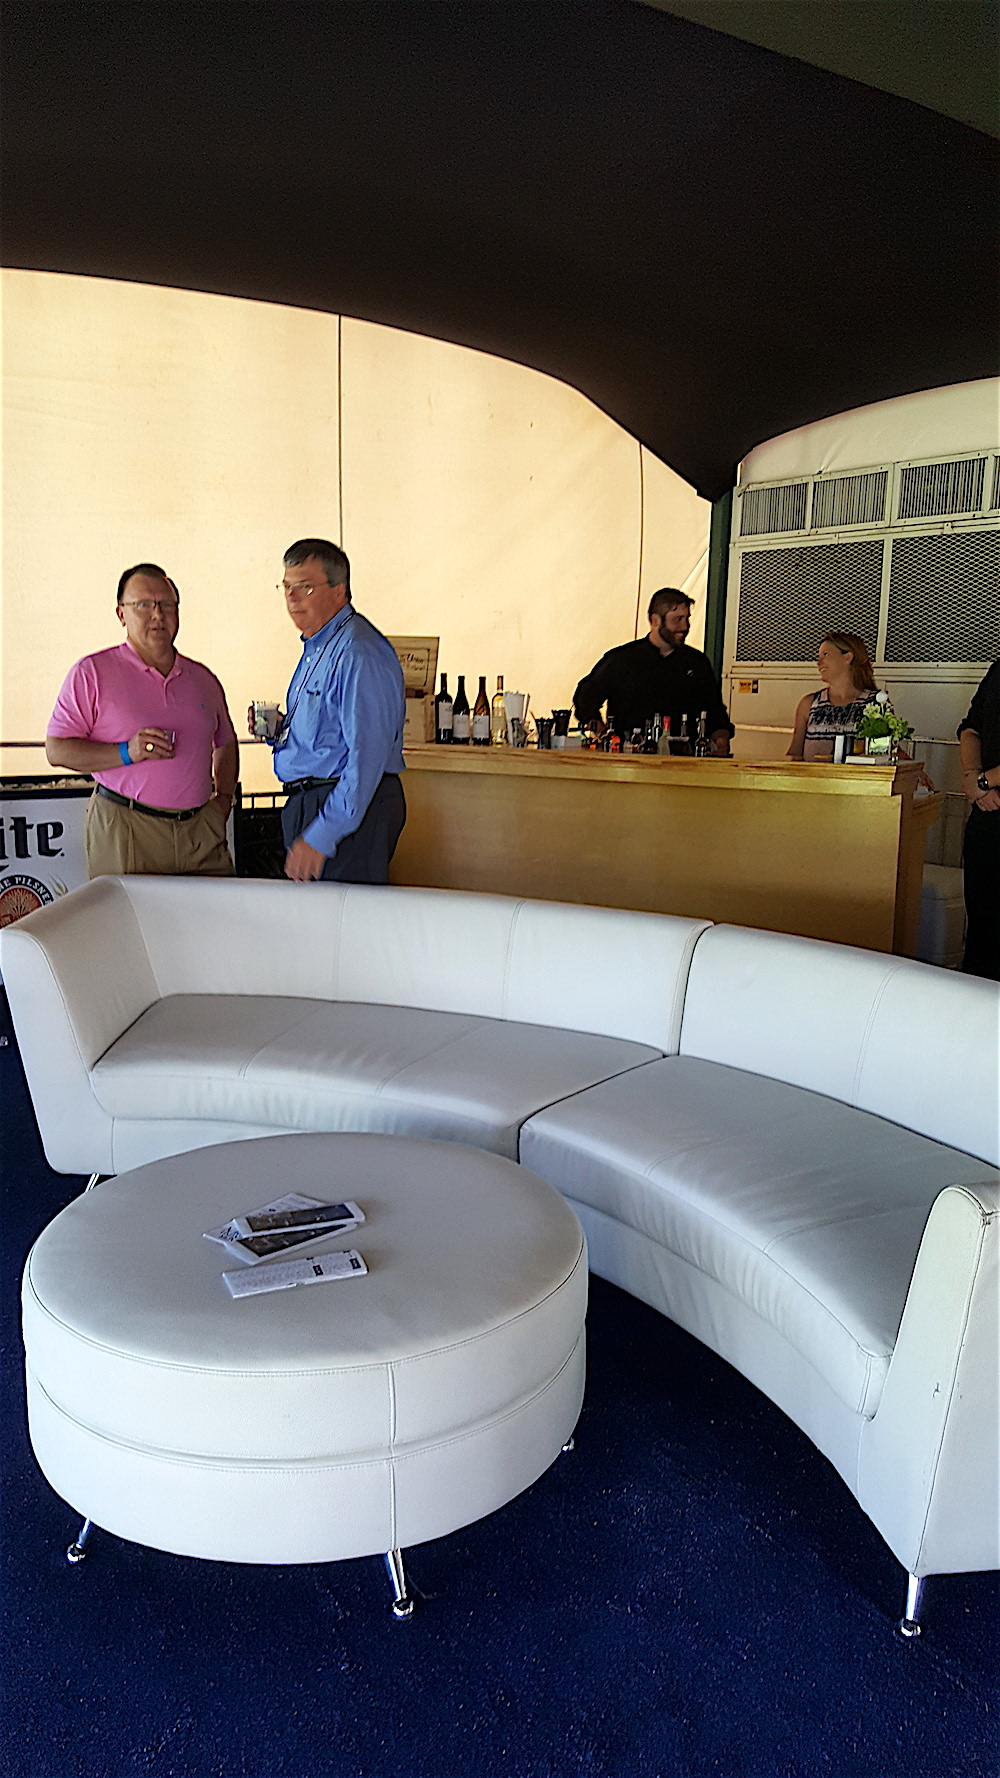 Over at Fox Den Country Club yesterday, get a load of the plush interior of the Fleming's Ultimate 100 skybox! It looks like a cocktail lounge.